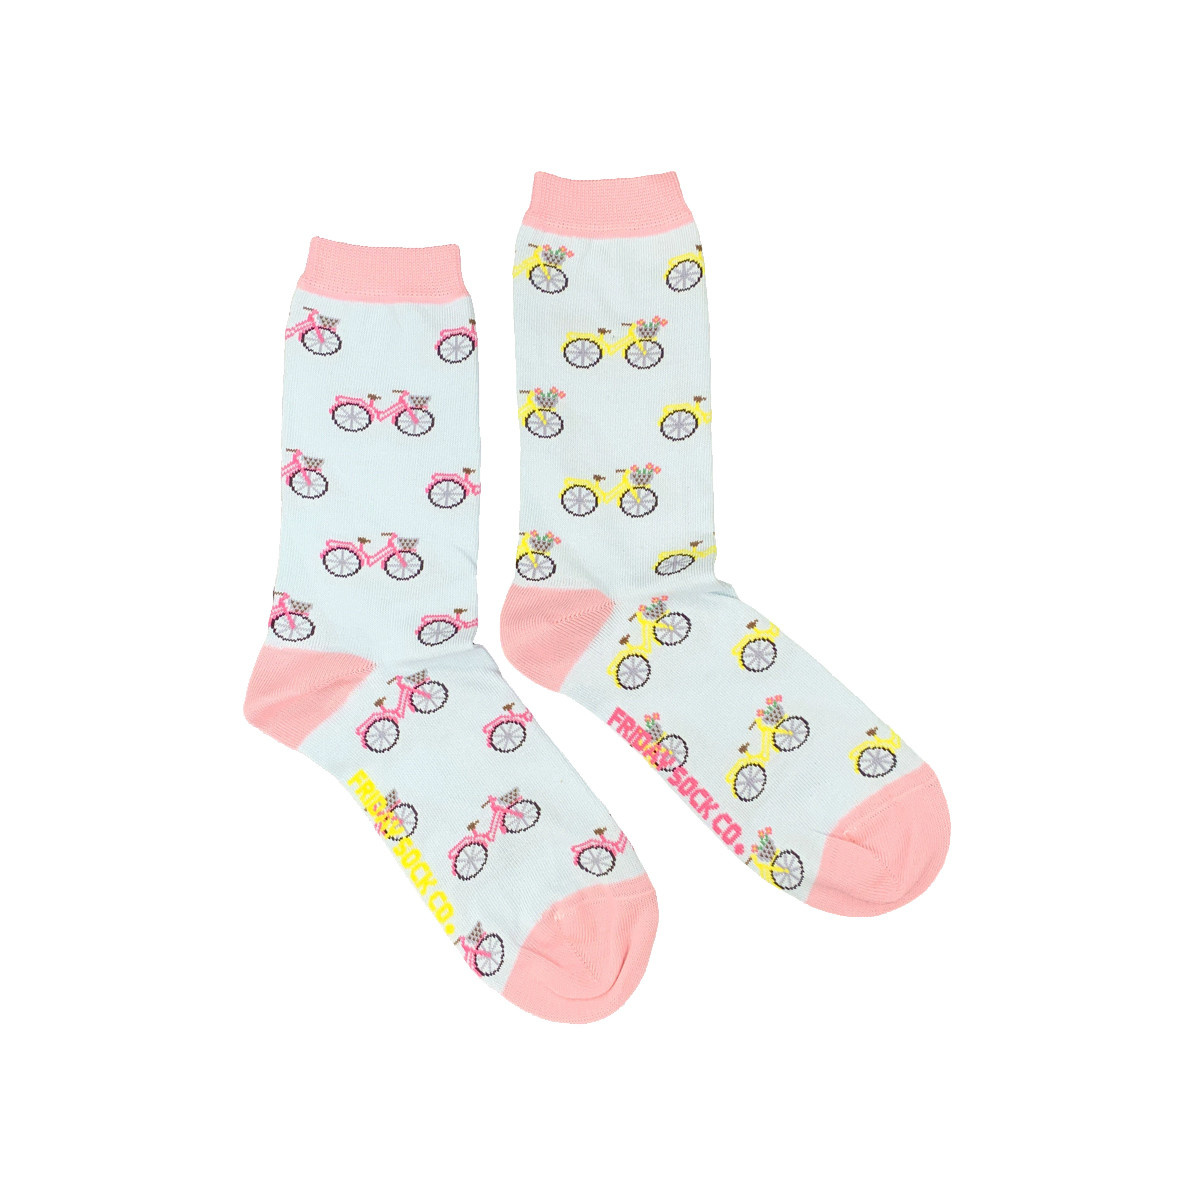 Friday Sock Co. Friday Sock Co. Women's Pink & Yellow Bicycles Crew W 5 - 10 (M - 4 - 8)